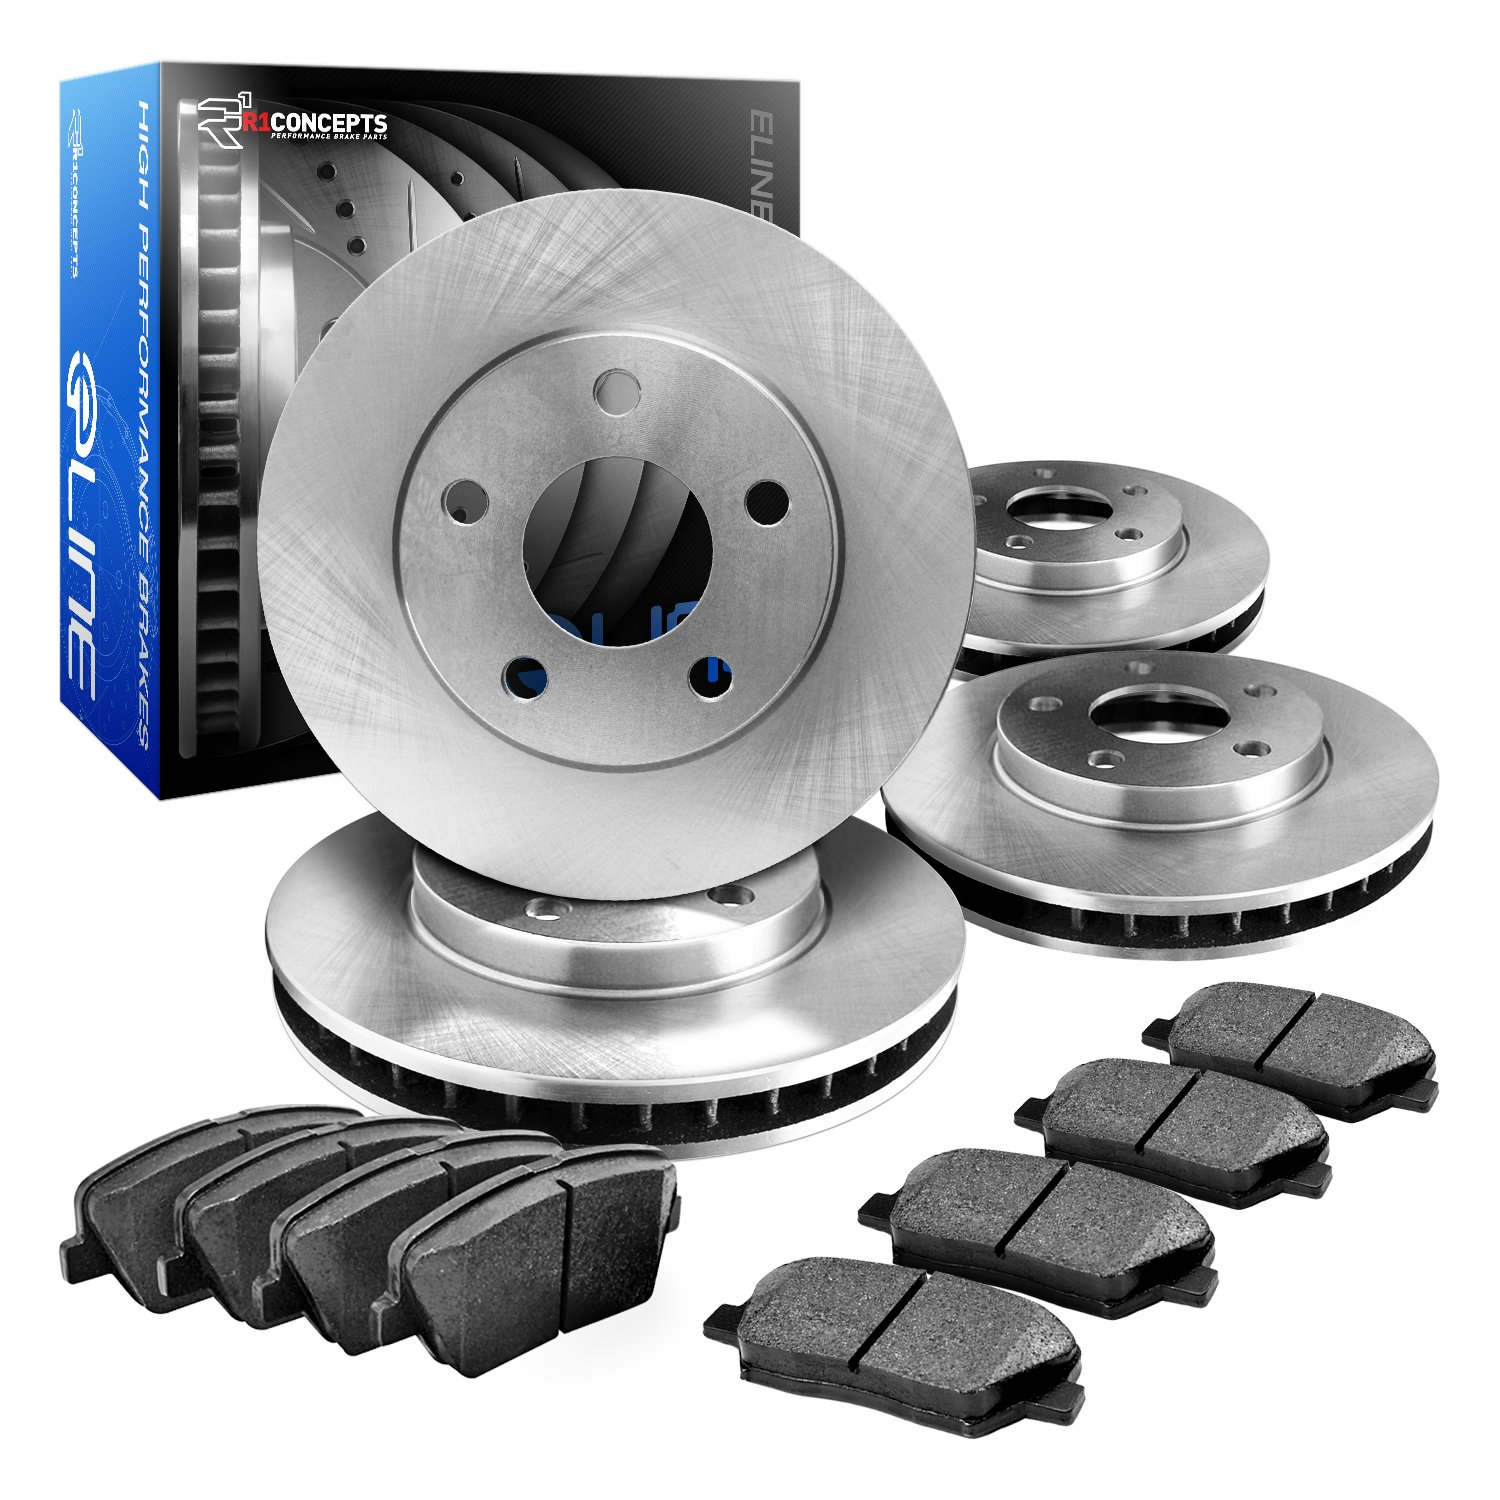 R1 Concepts CEOE10765 Eline Series Replacement Rotors And Ceramic Pads Kit - Front and Rear